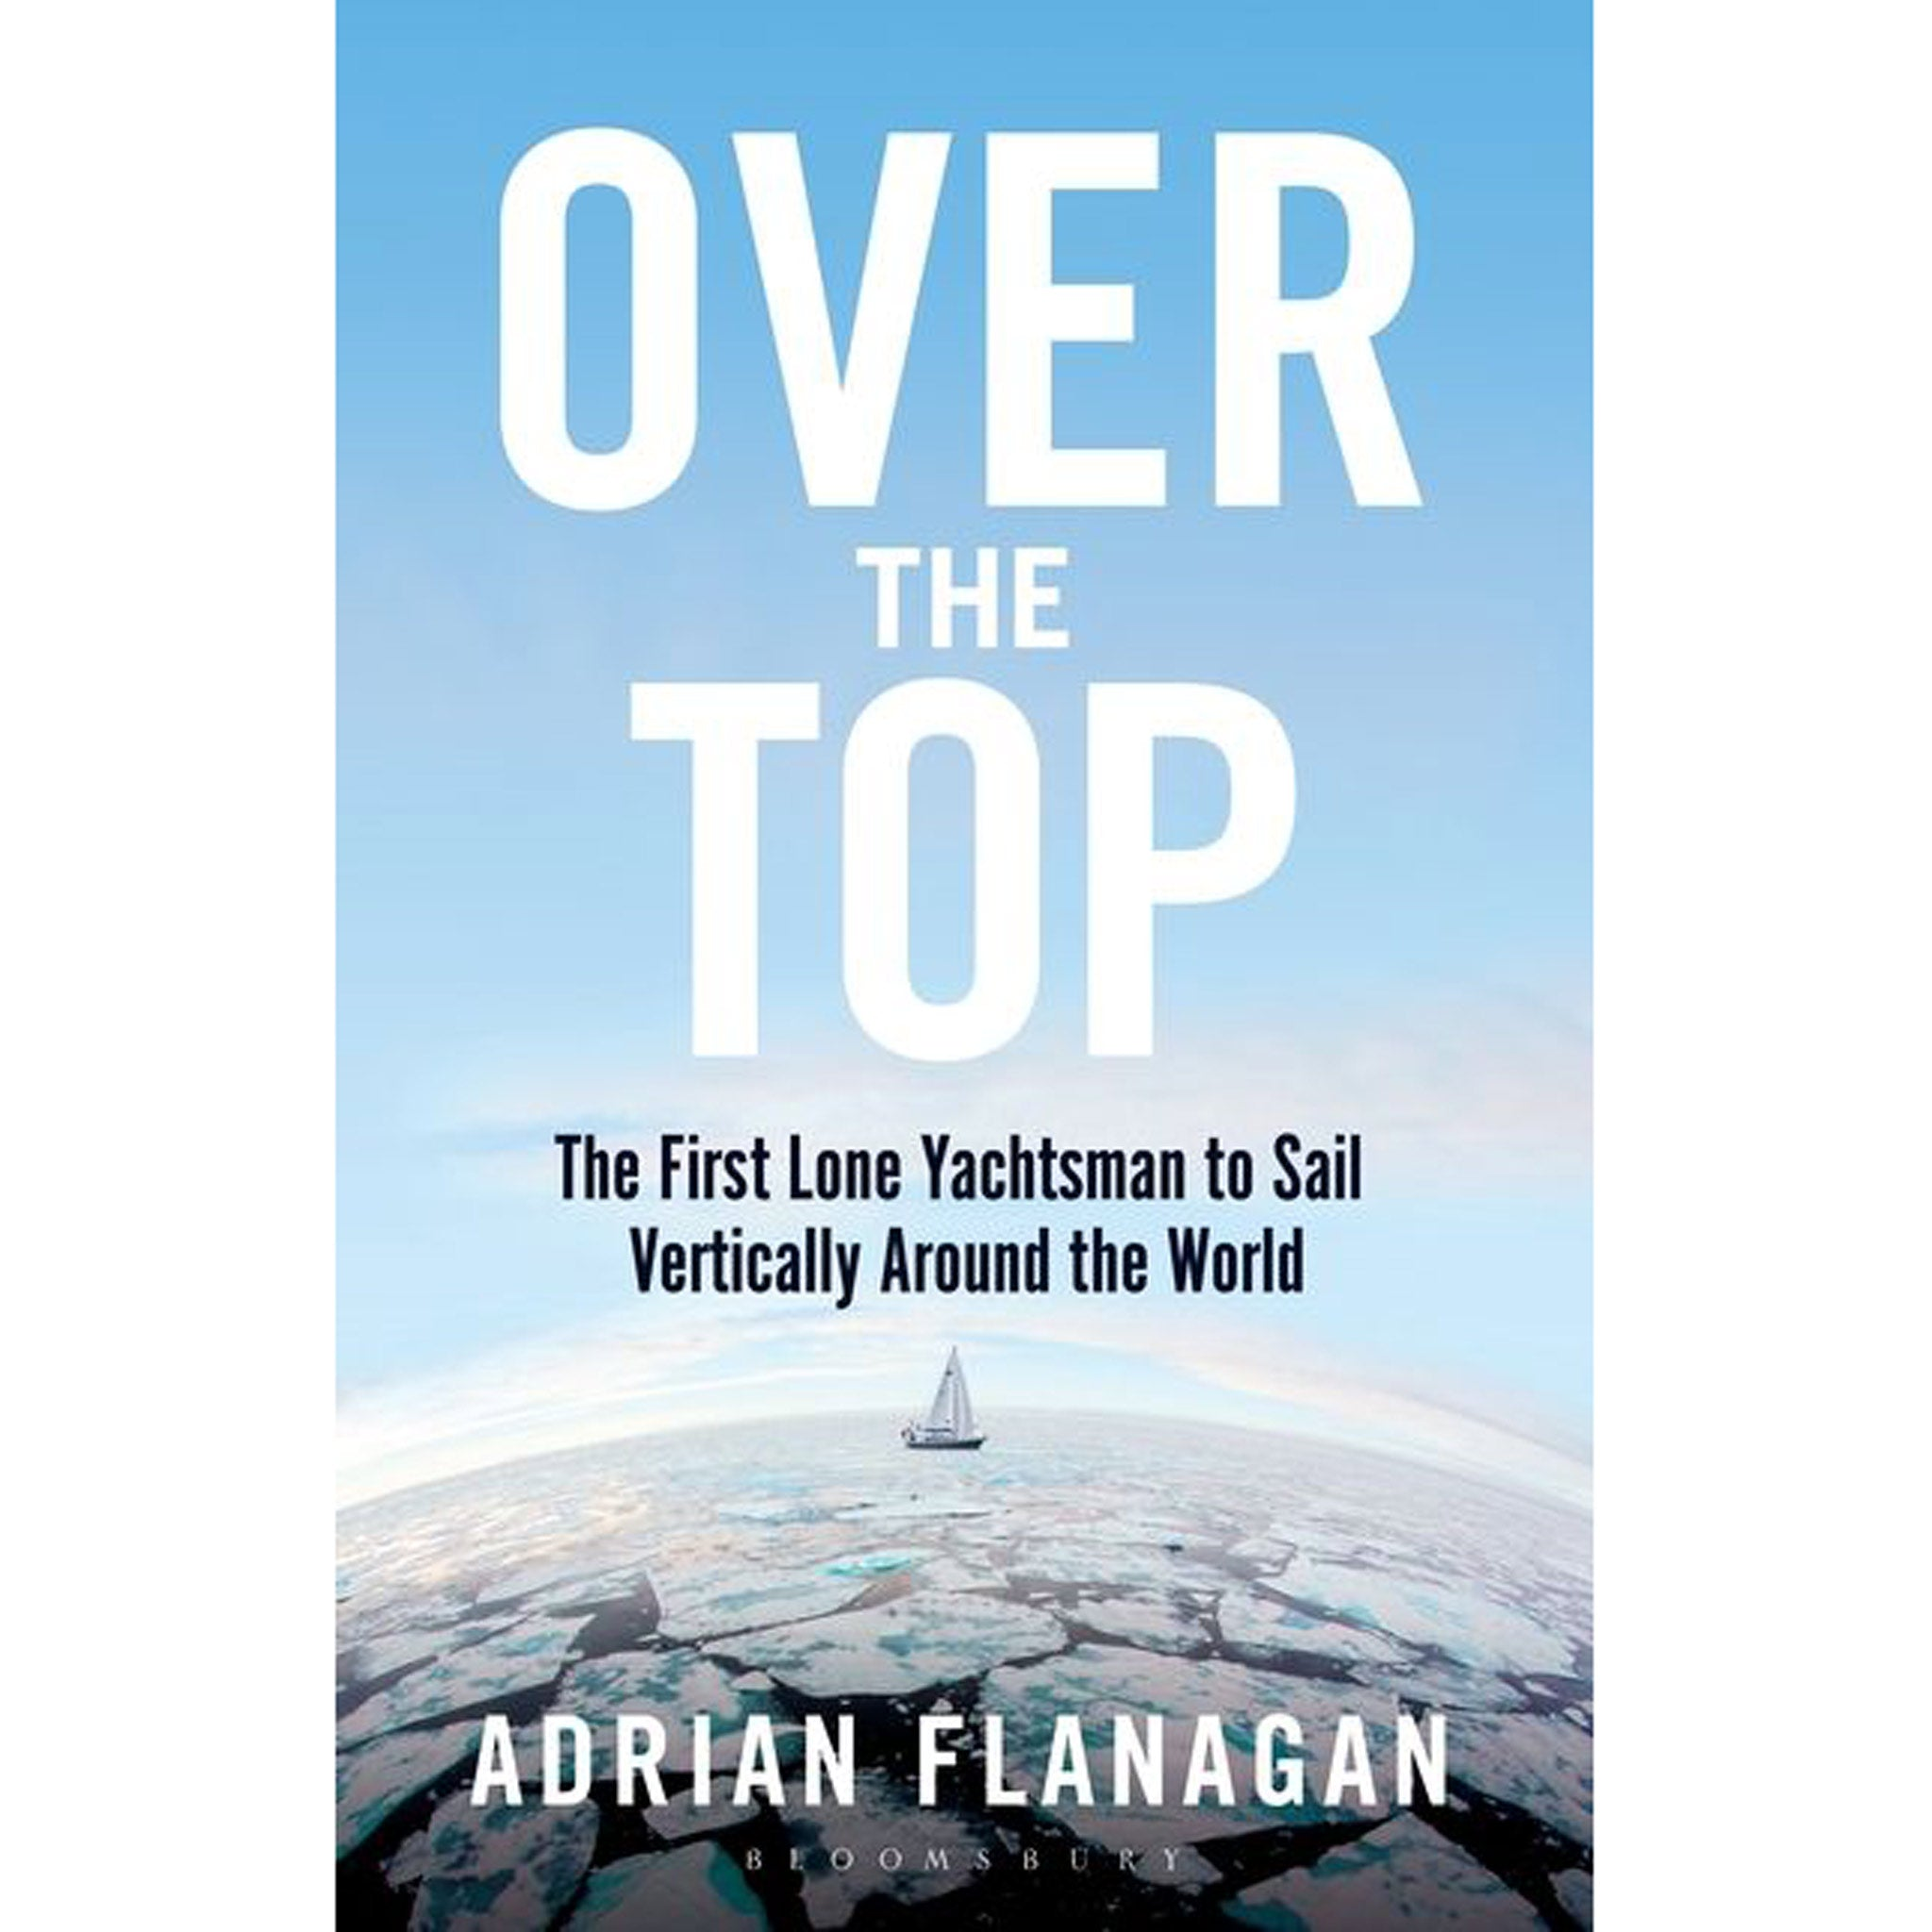 Over the Top - Sailing Around the World Vertically